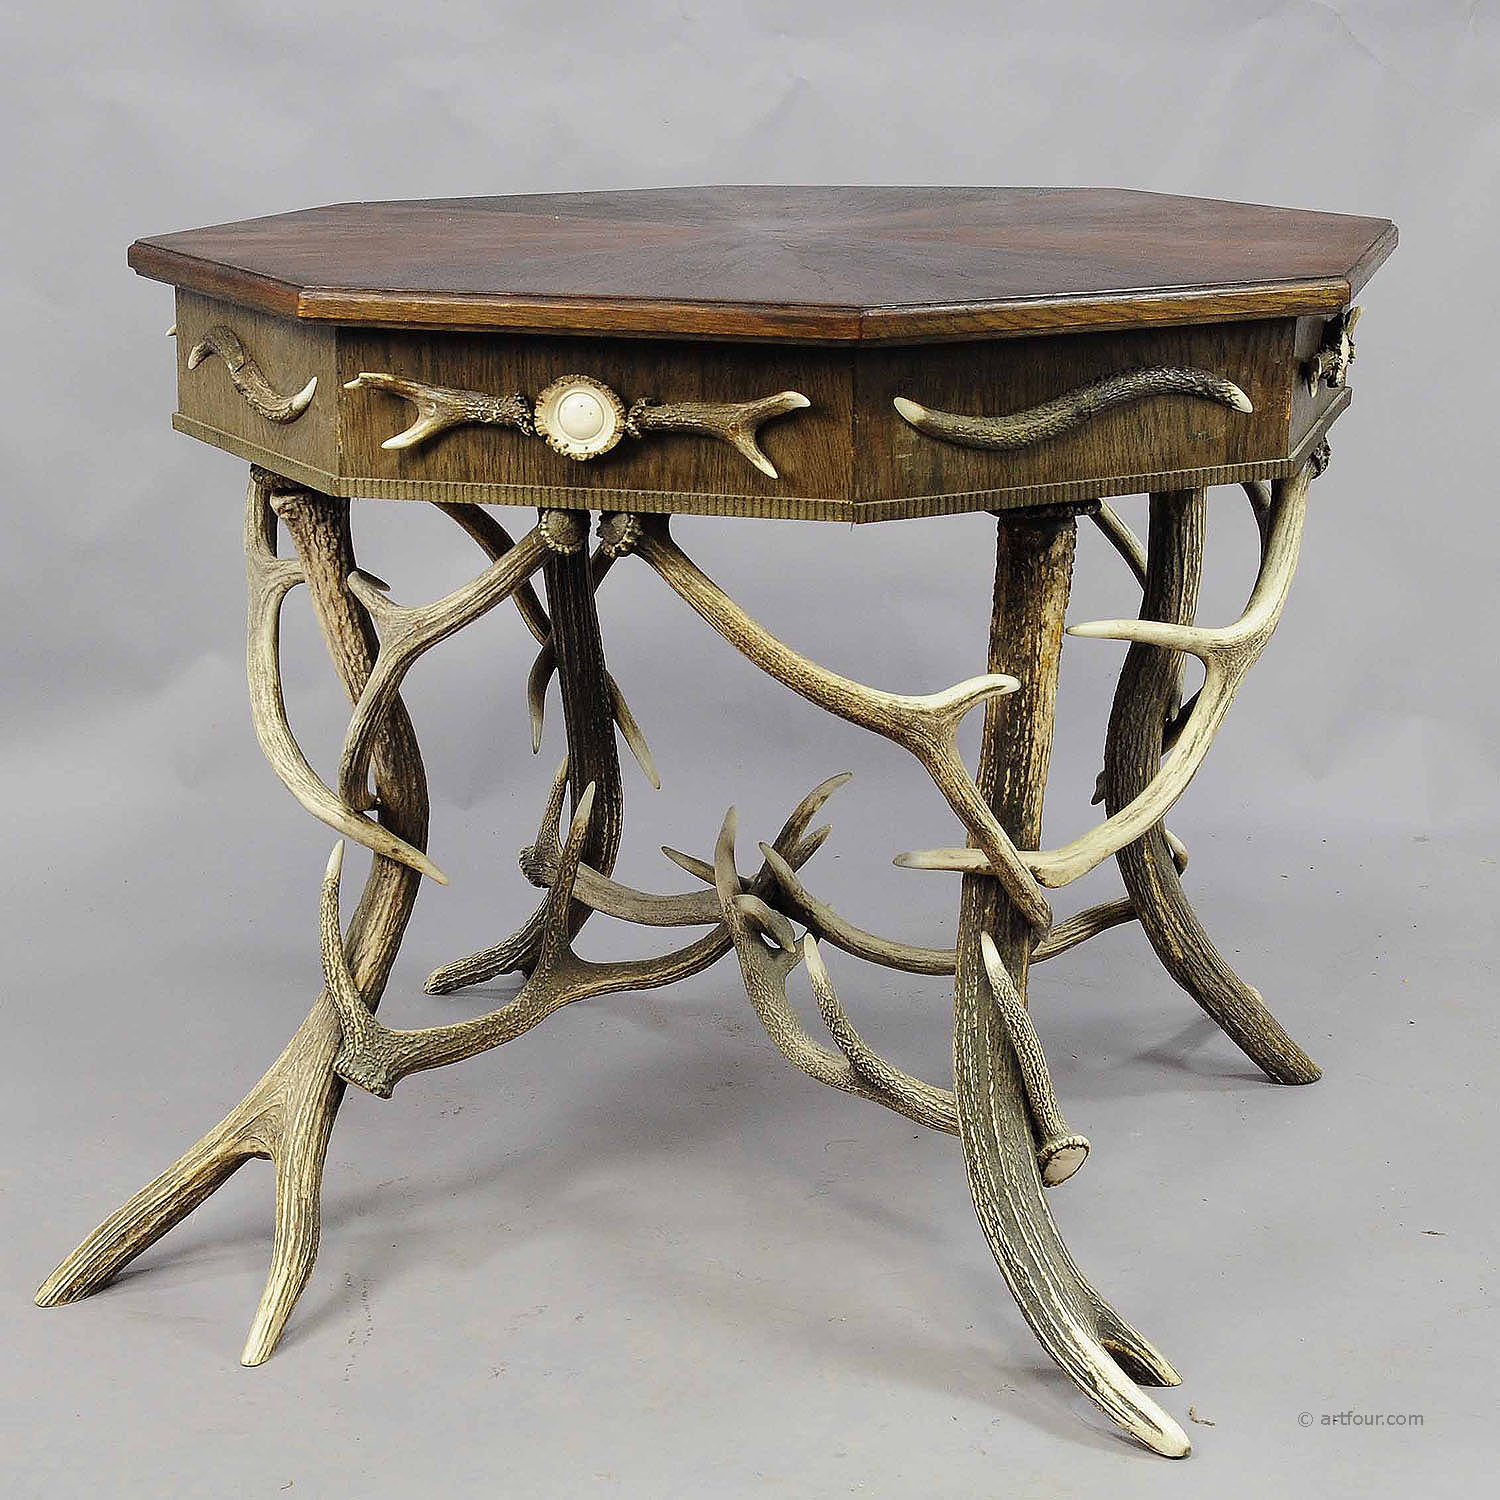 Antique Octagonal Antler Table With Genuine Antlers